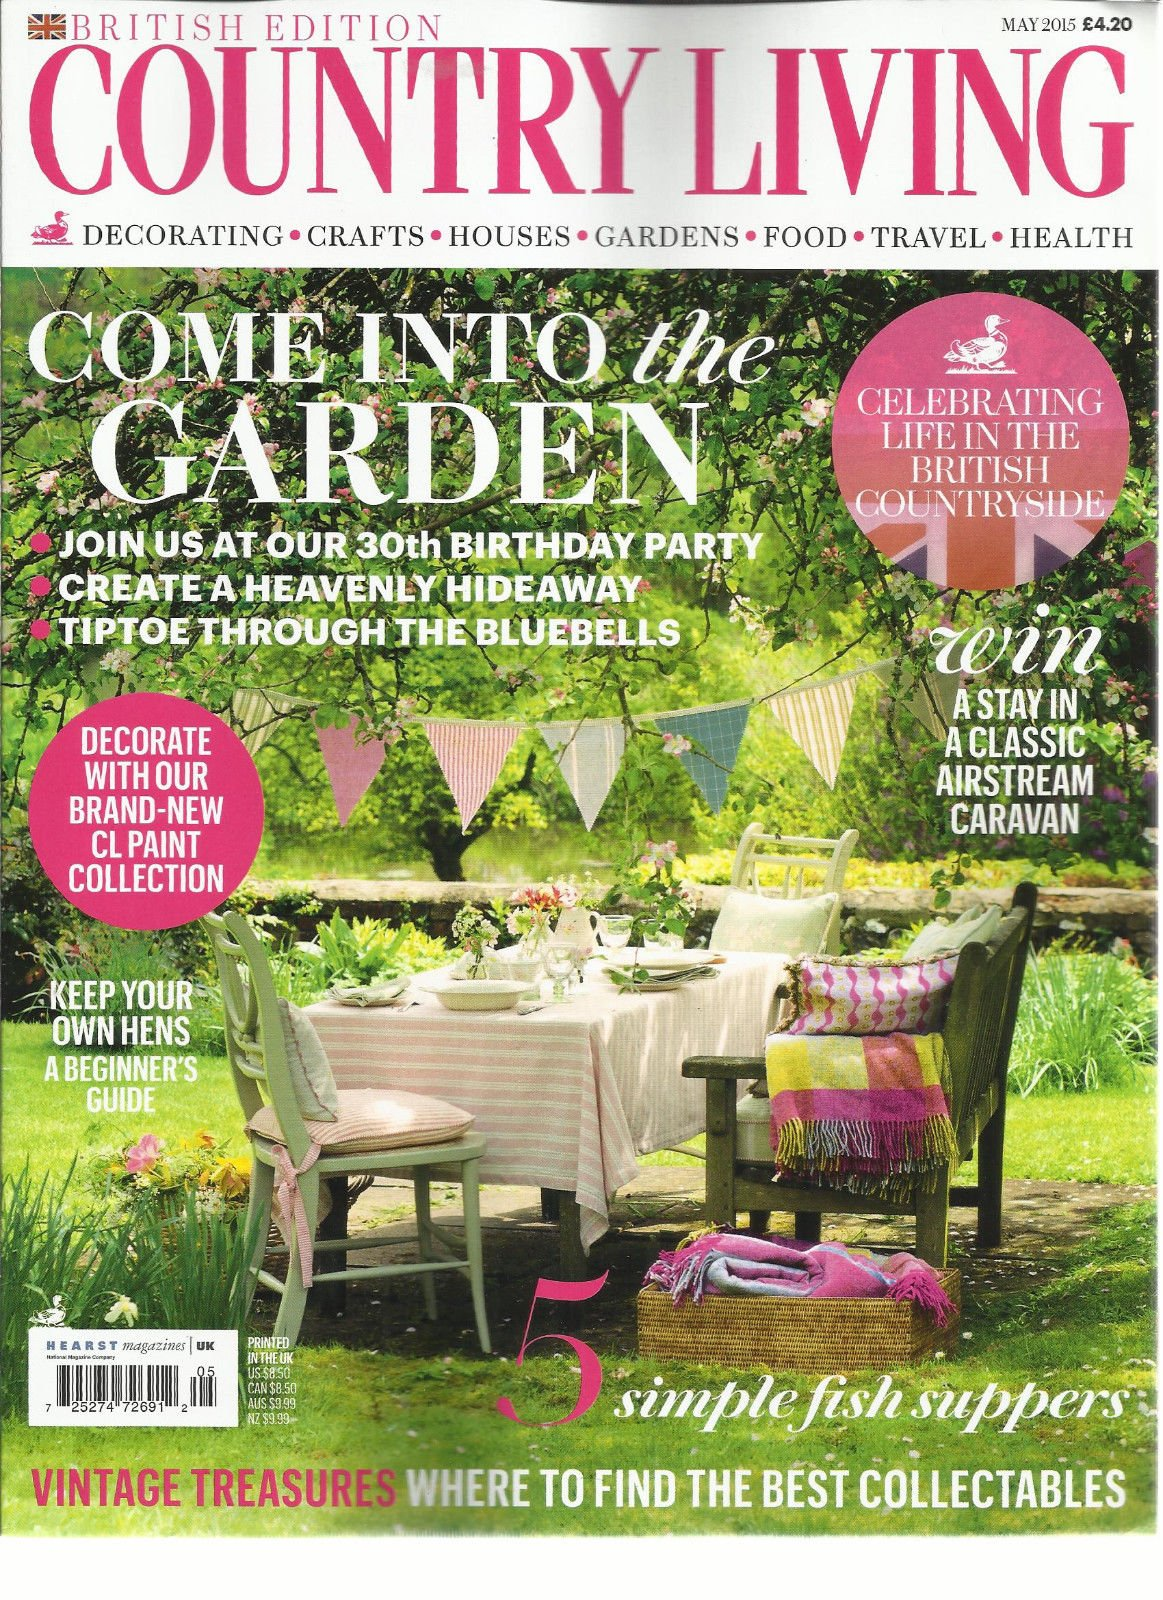 COUNTRY LIVING MAGAZINE, BRITISH EDITION MAY, 2015 (COME INTO THE GARDEN)